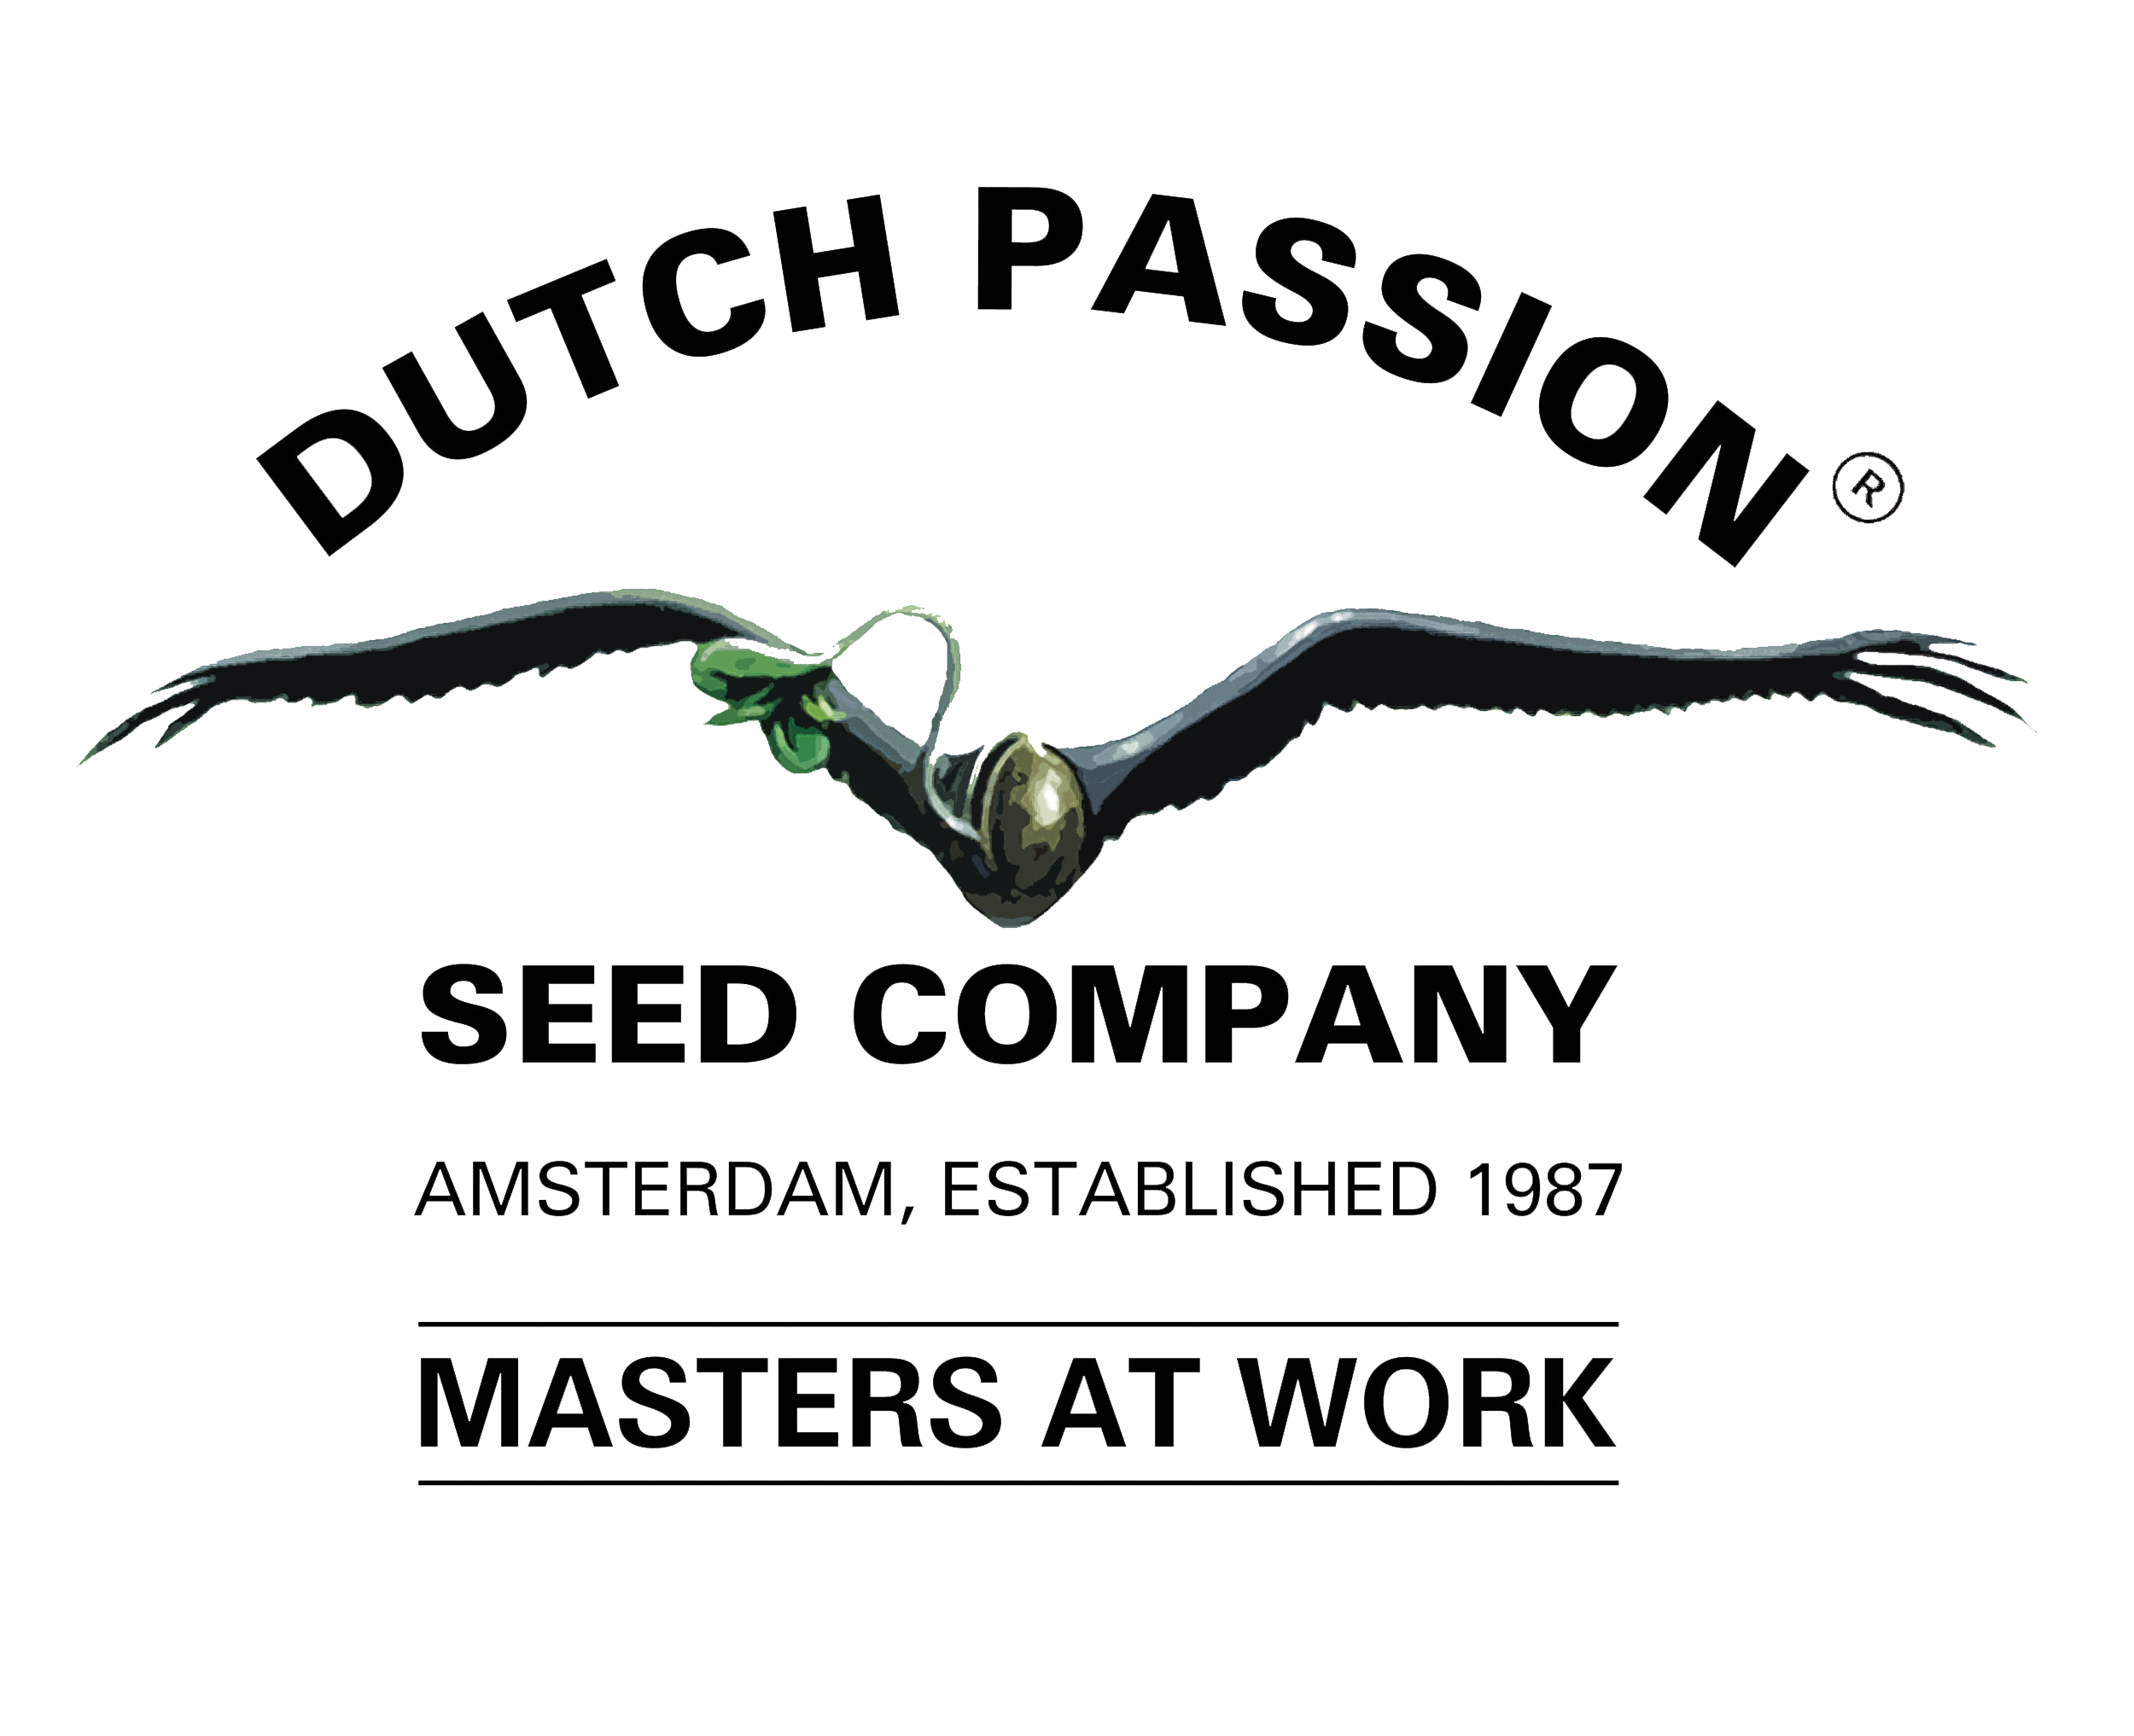 Dutch_passion_logo_1